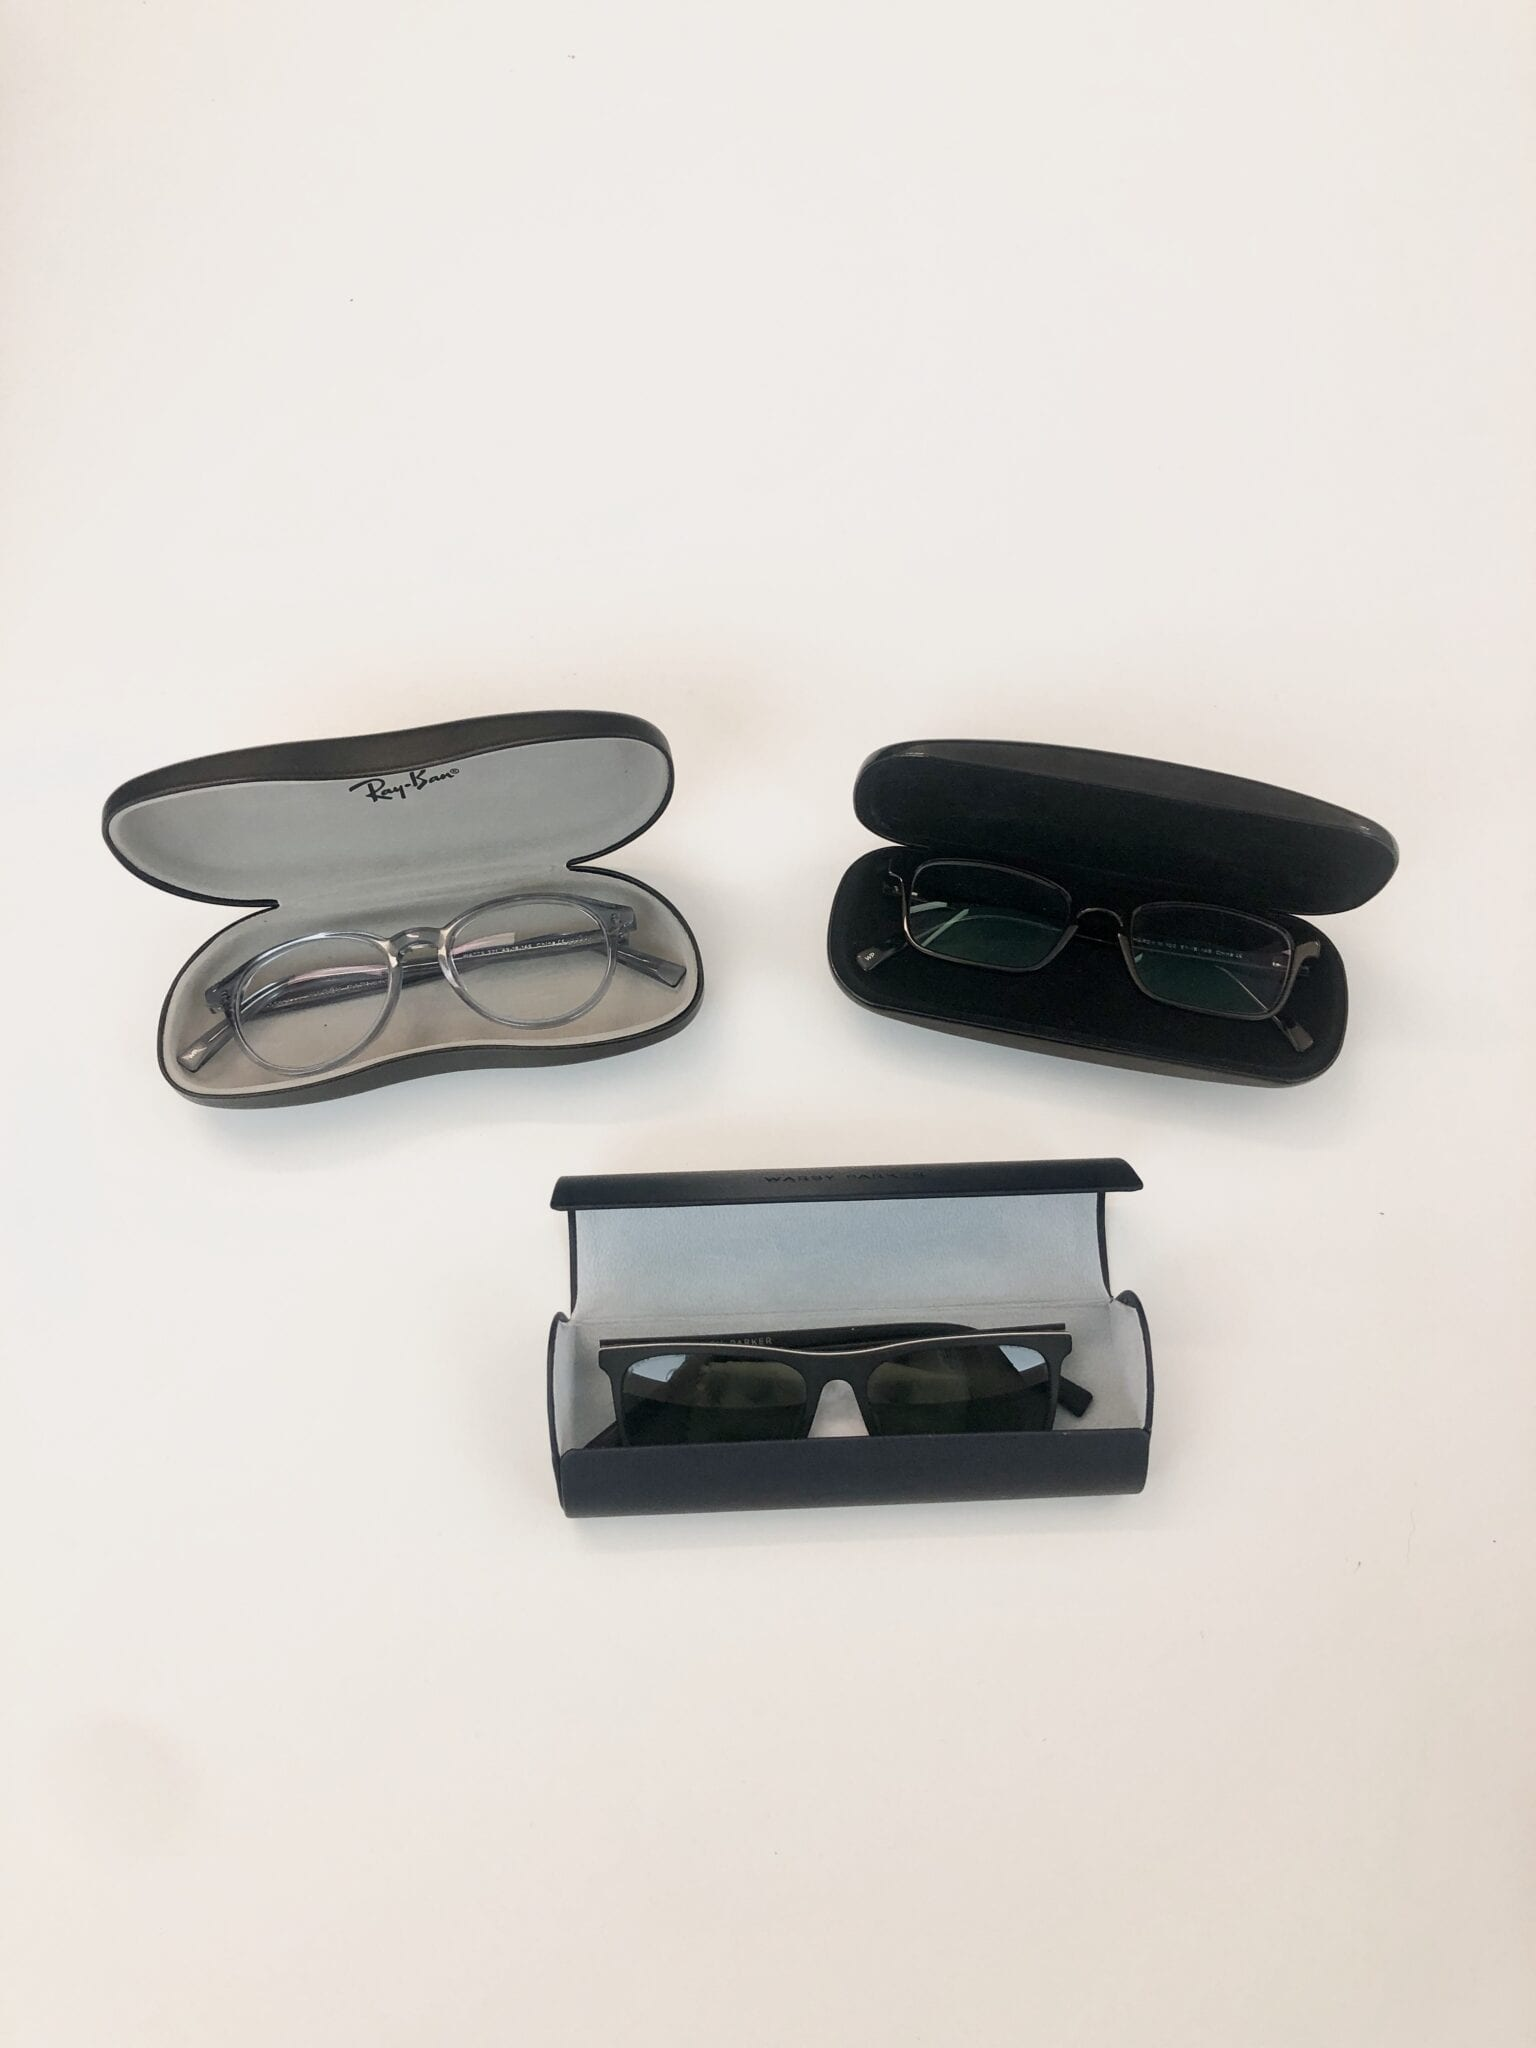 Three black glasses cases open with glasses in them on a table.